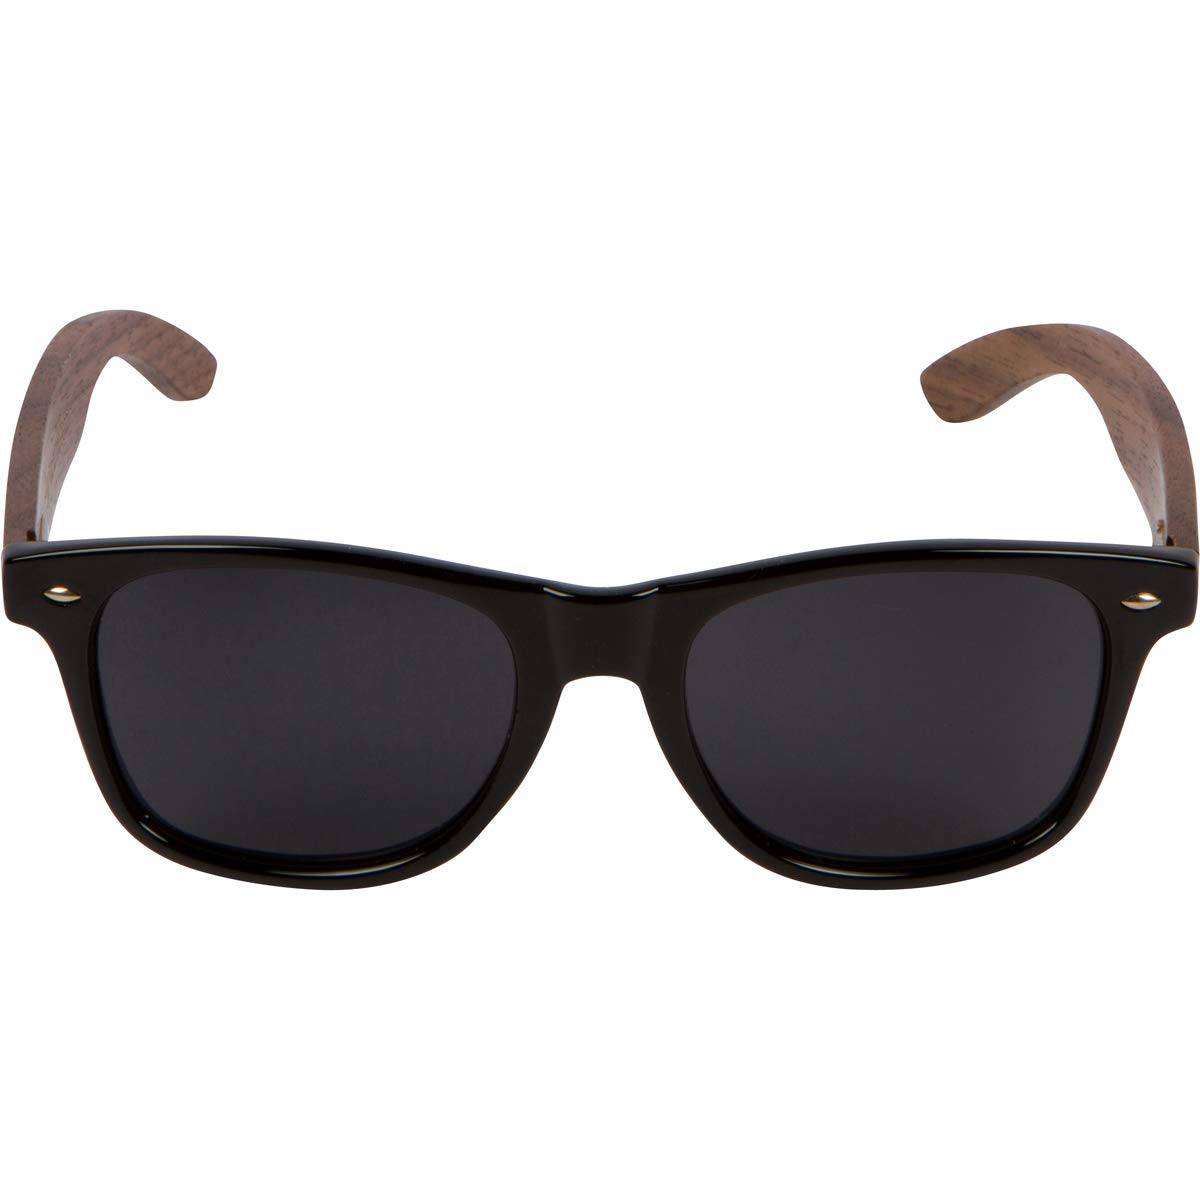 WOODIES Walnut Wood Wayfarer Sunglasses with Polarized Lens in Wood Display Box for Men or Women by Woodies (Image #5)